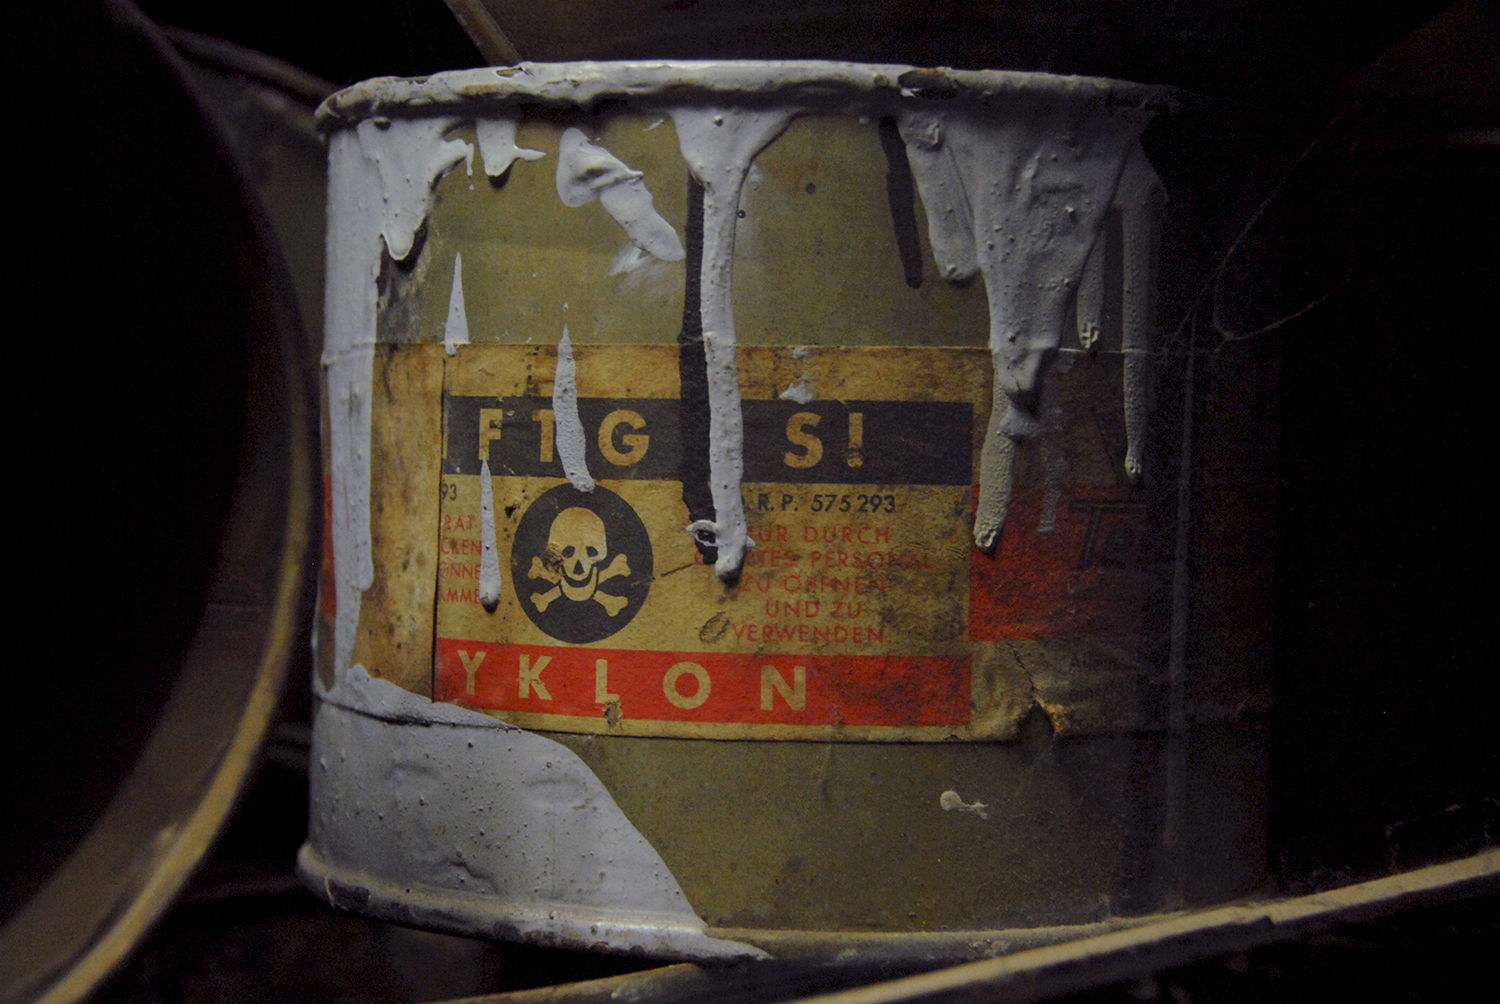 The deadly cyanide-based pesticide Zyklon B used in the gas chambers of the Holocaust concentration camps. (Credit: Sebastien ORTOLA/REA/Redux)